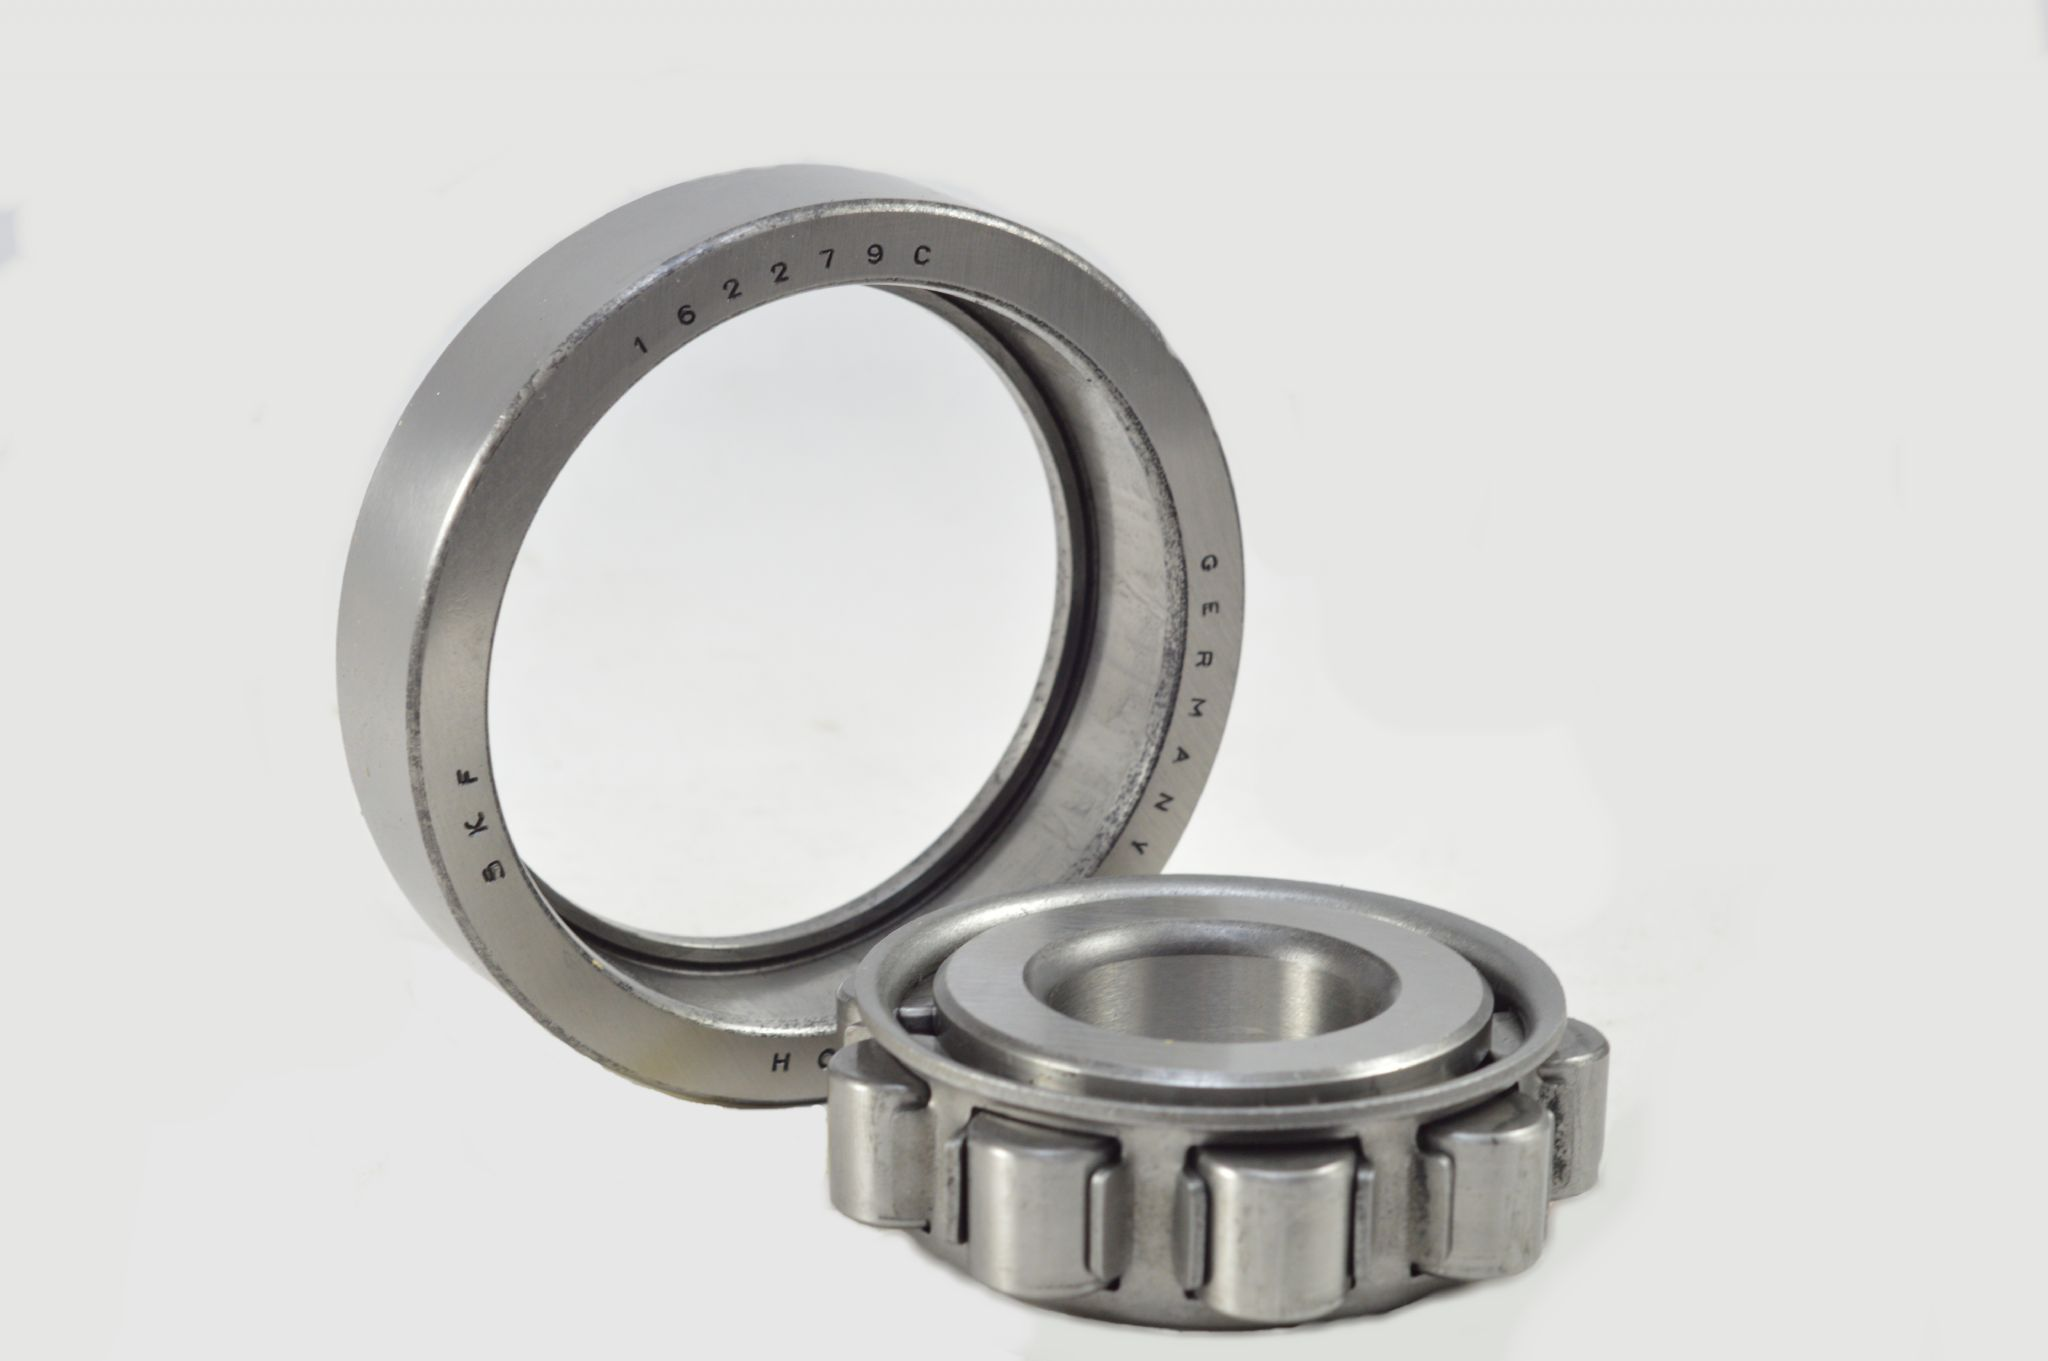 Dexta Tractor Gear Box Bearings : Fordson major gearbox roller bearing top shaft c